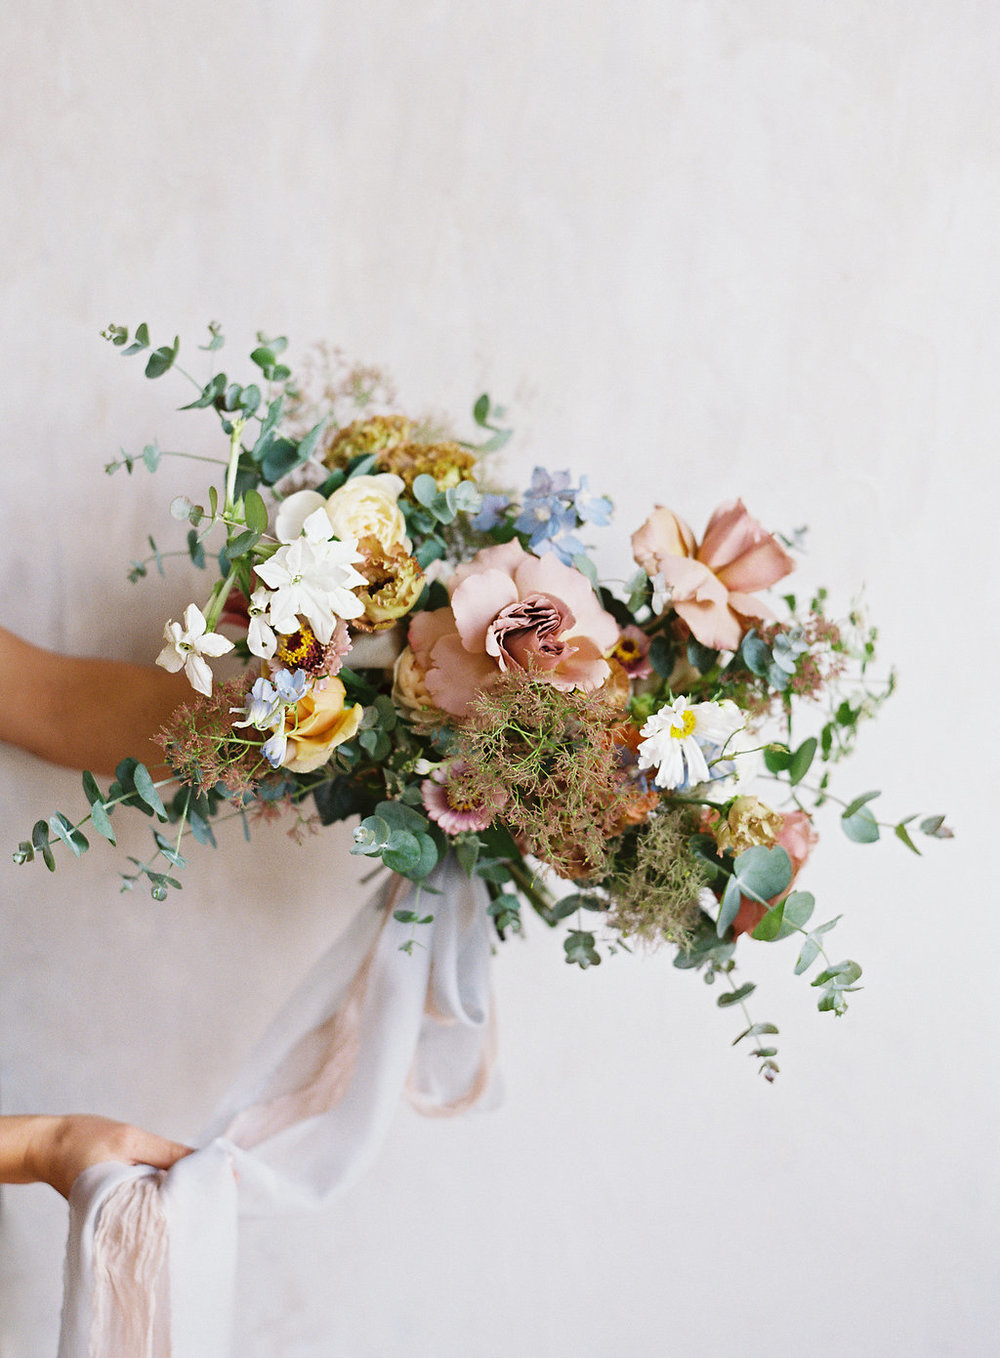 textured-bridal-bouquet-with-ribbons.jpg